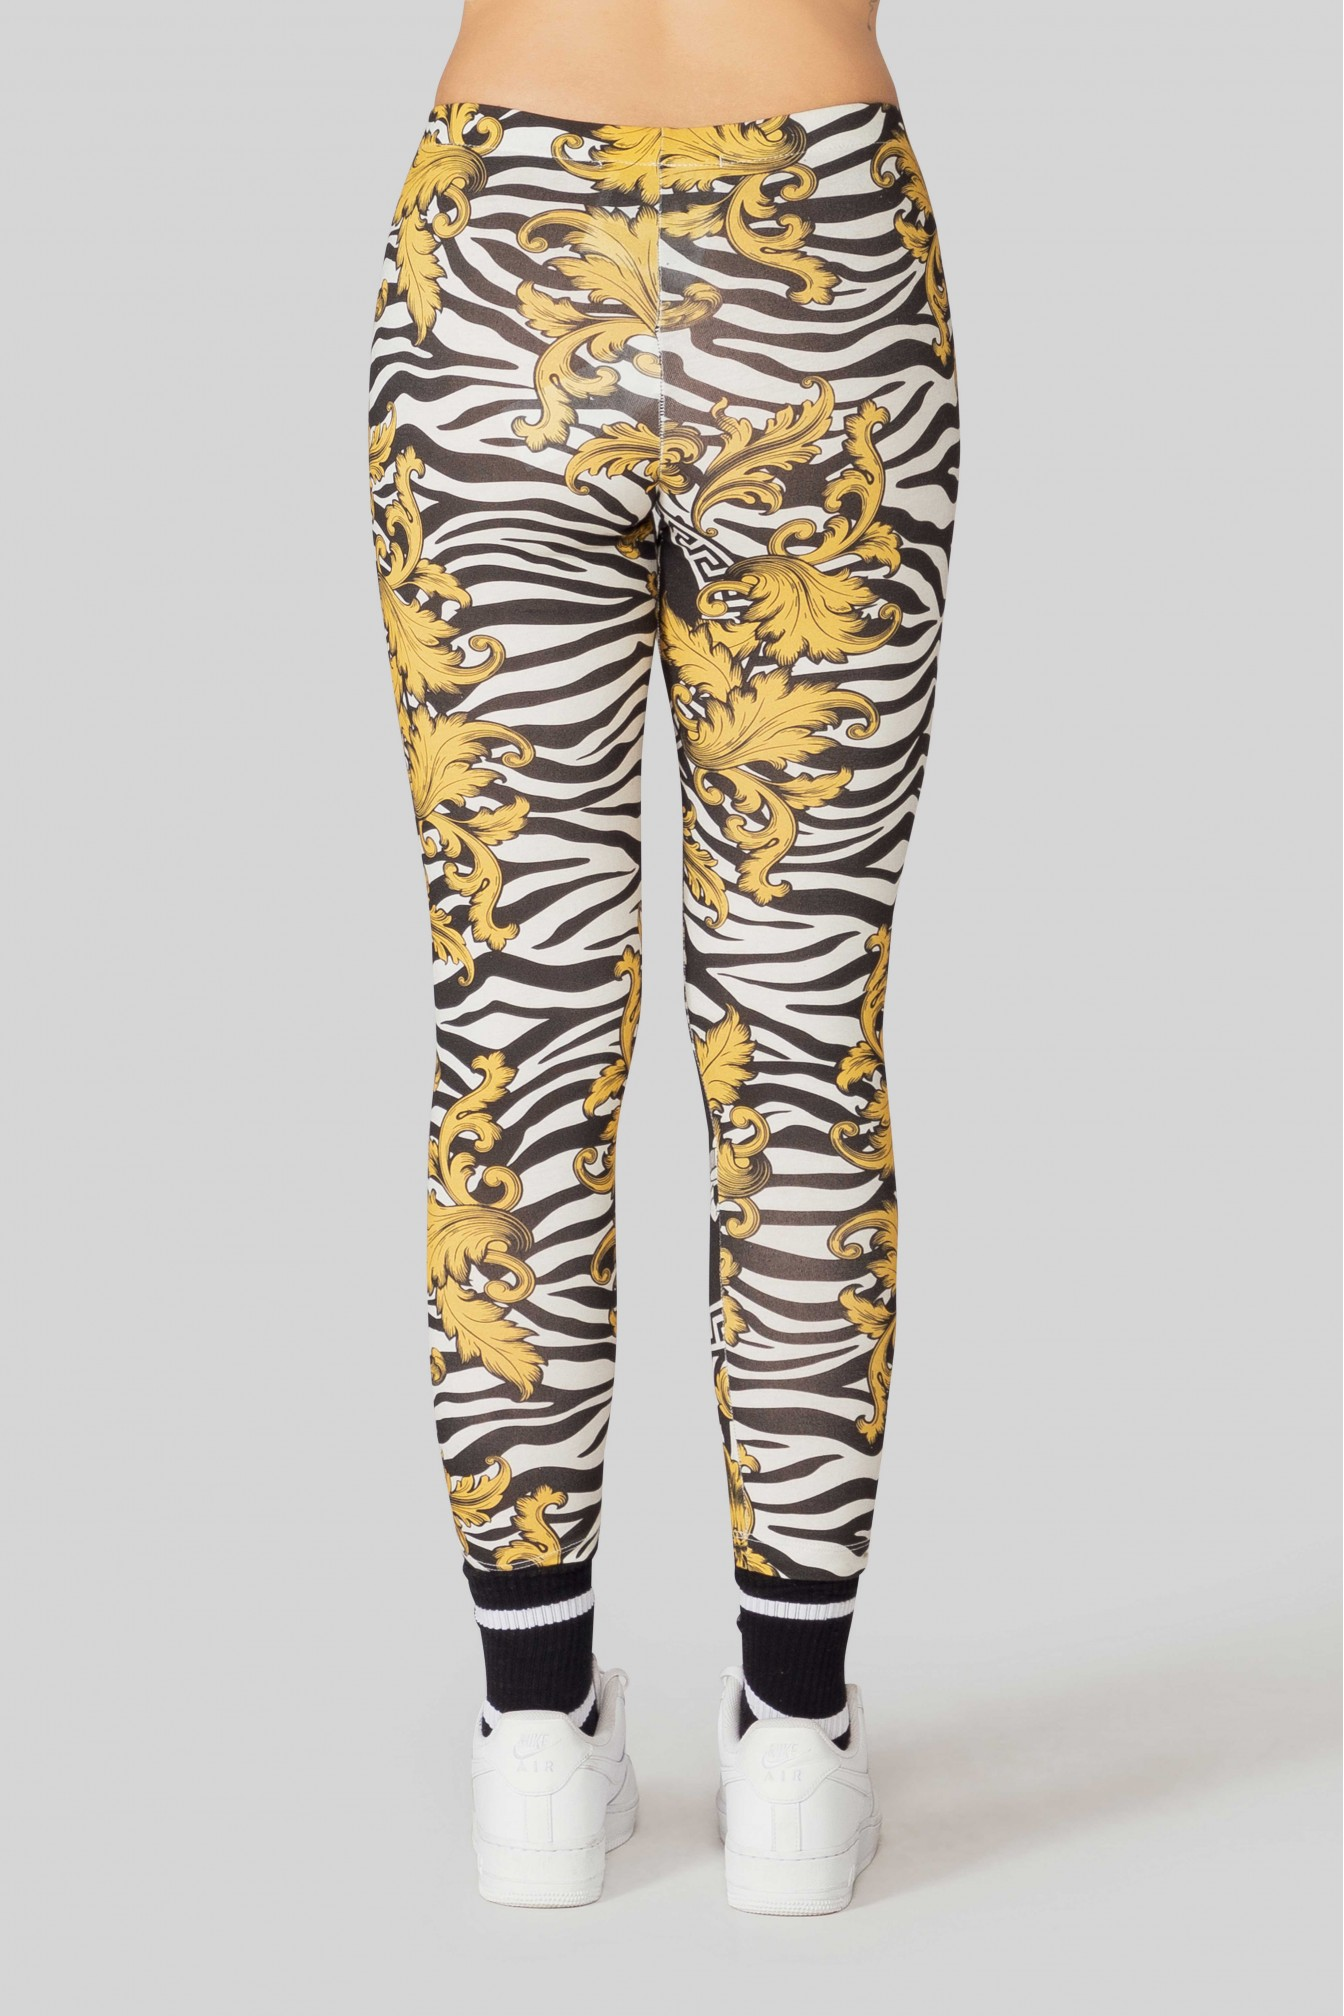 LEGGINGS - BLD2822 - BOY LONDON